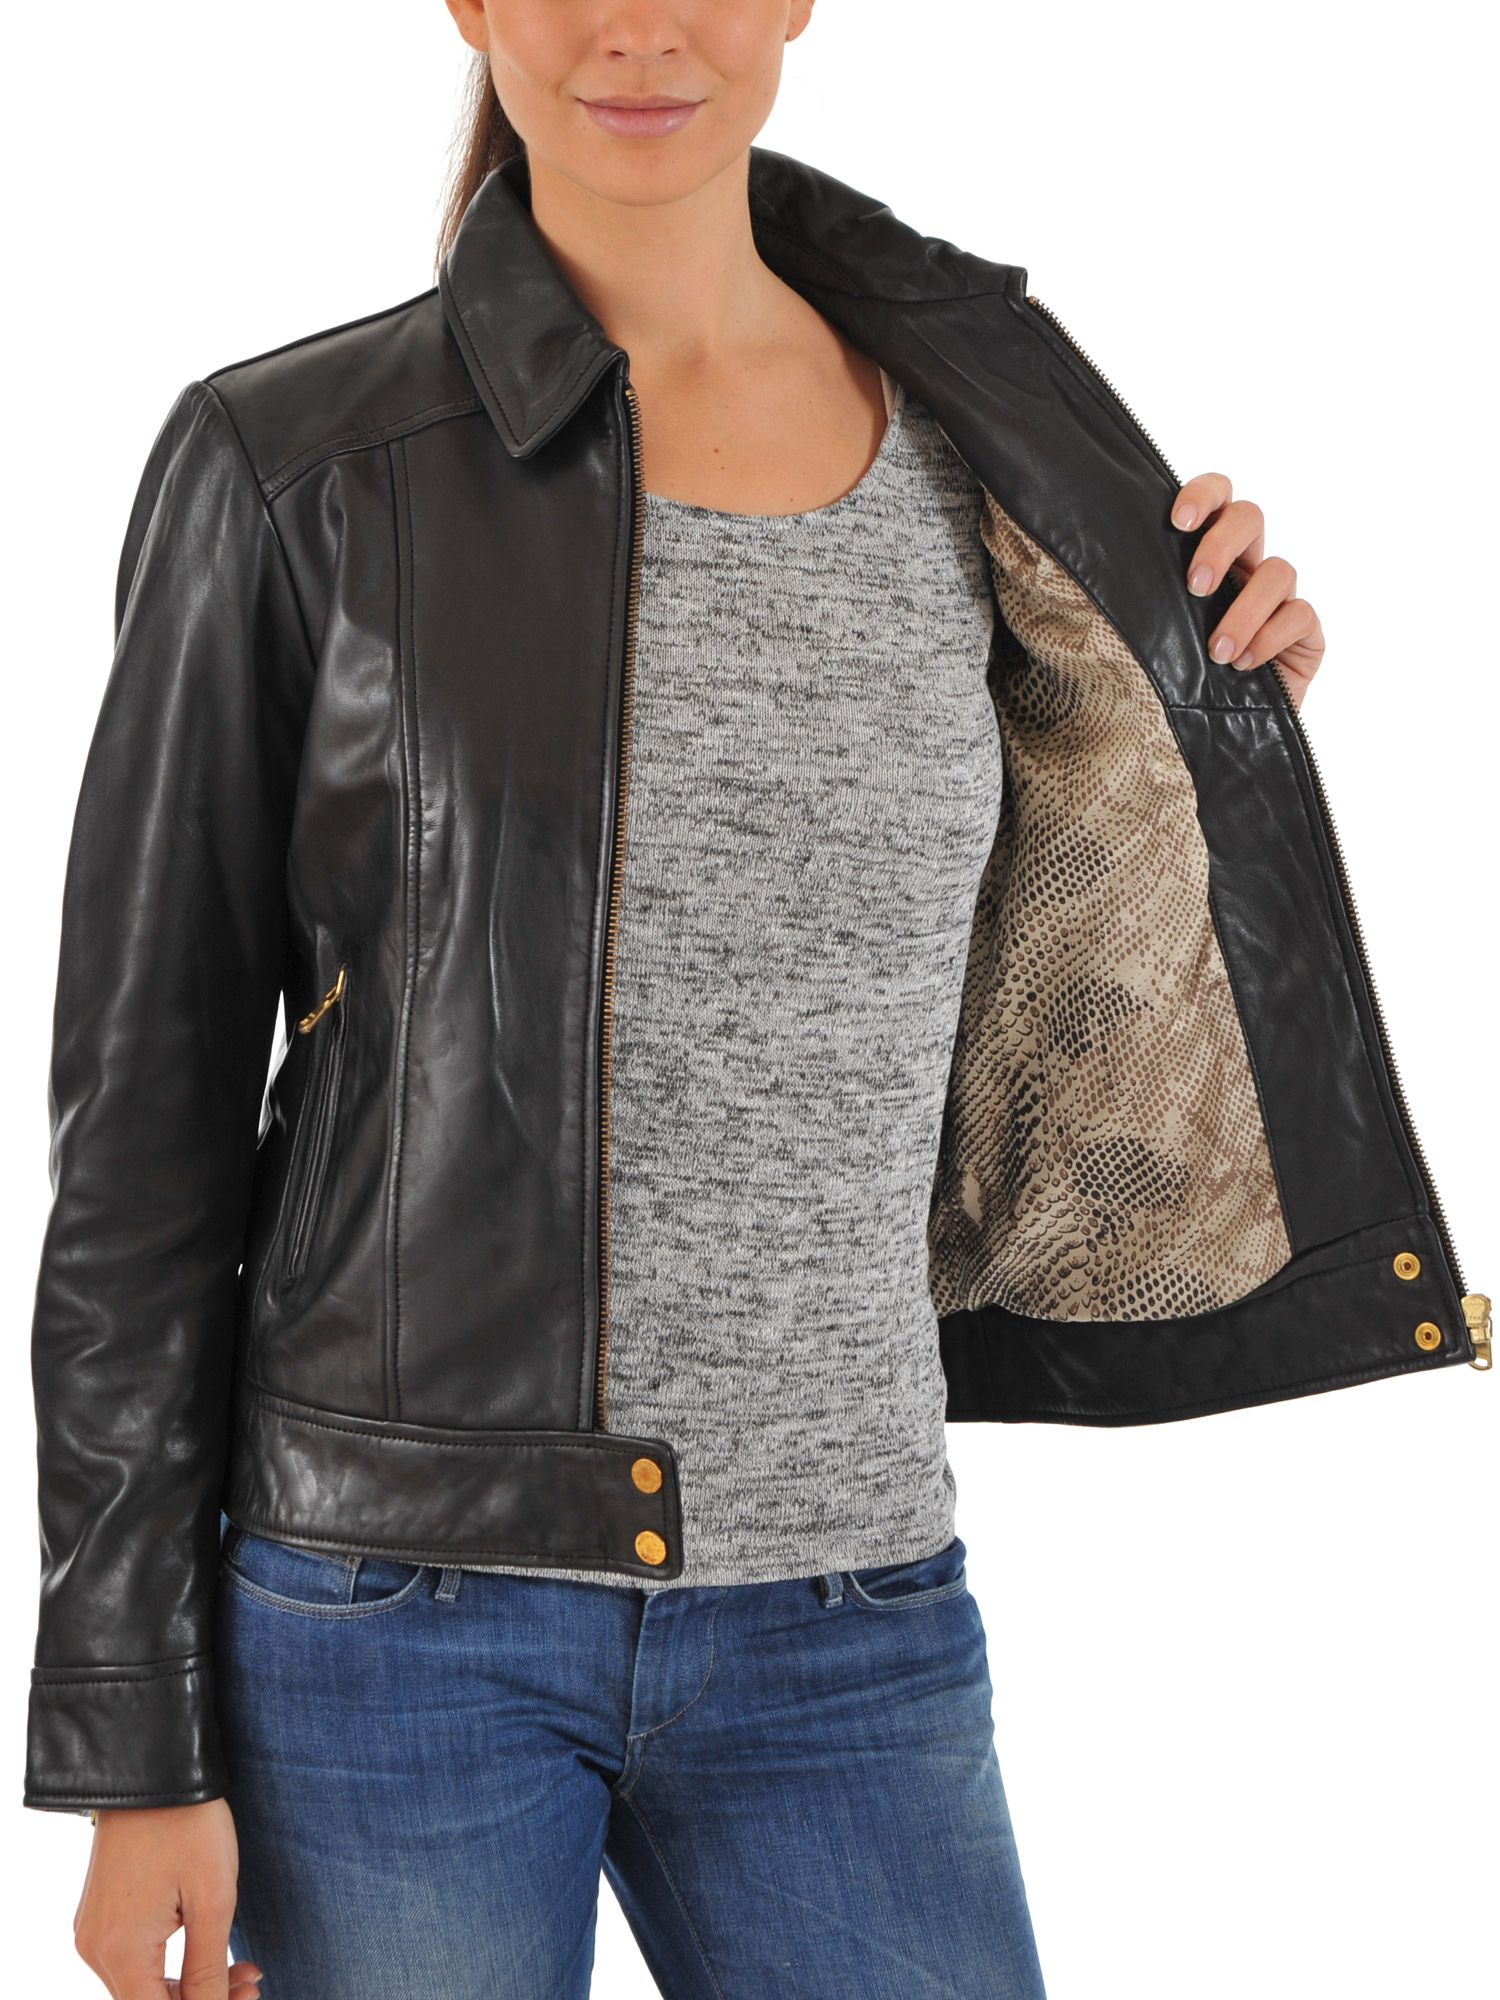 Leather jacket conditioner - Lambskin Leather Jacket Conditioner